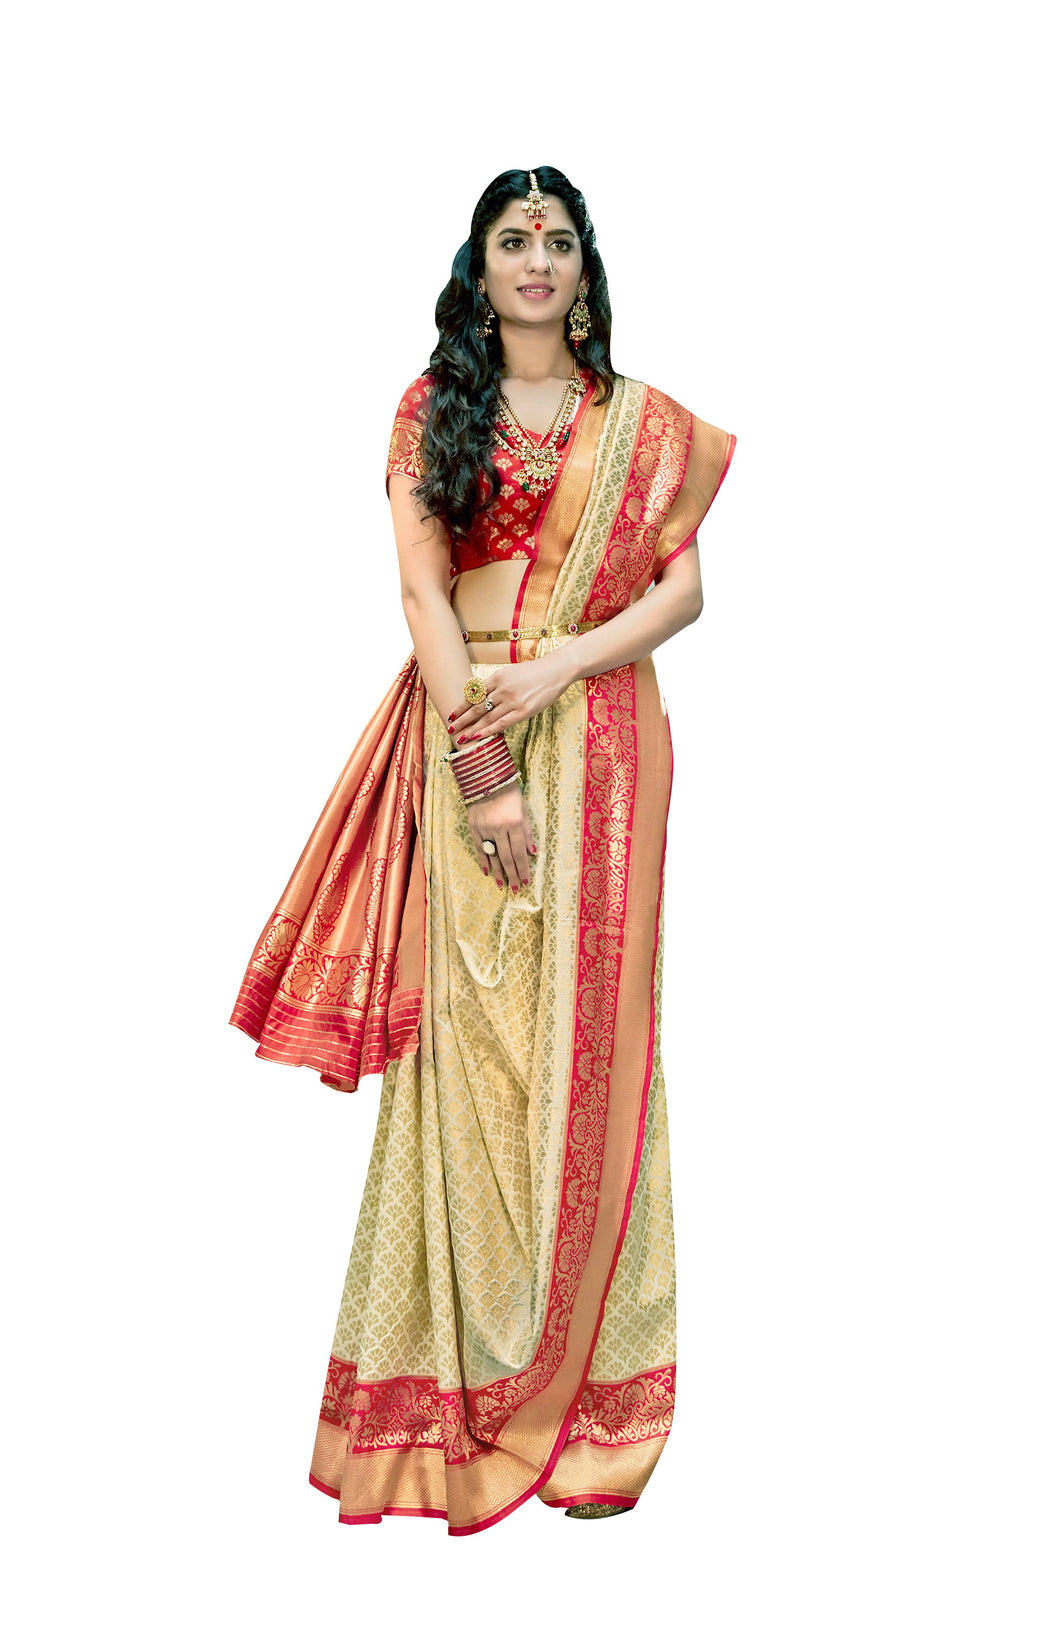 Designer Off White Red Border Silk Weaving Saree S60 - Ethnic's By Anvi Creations